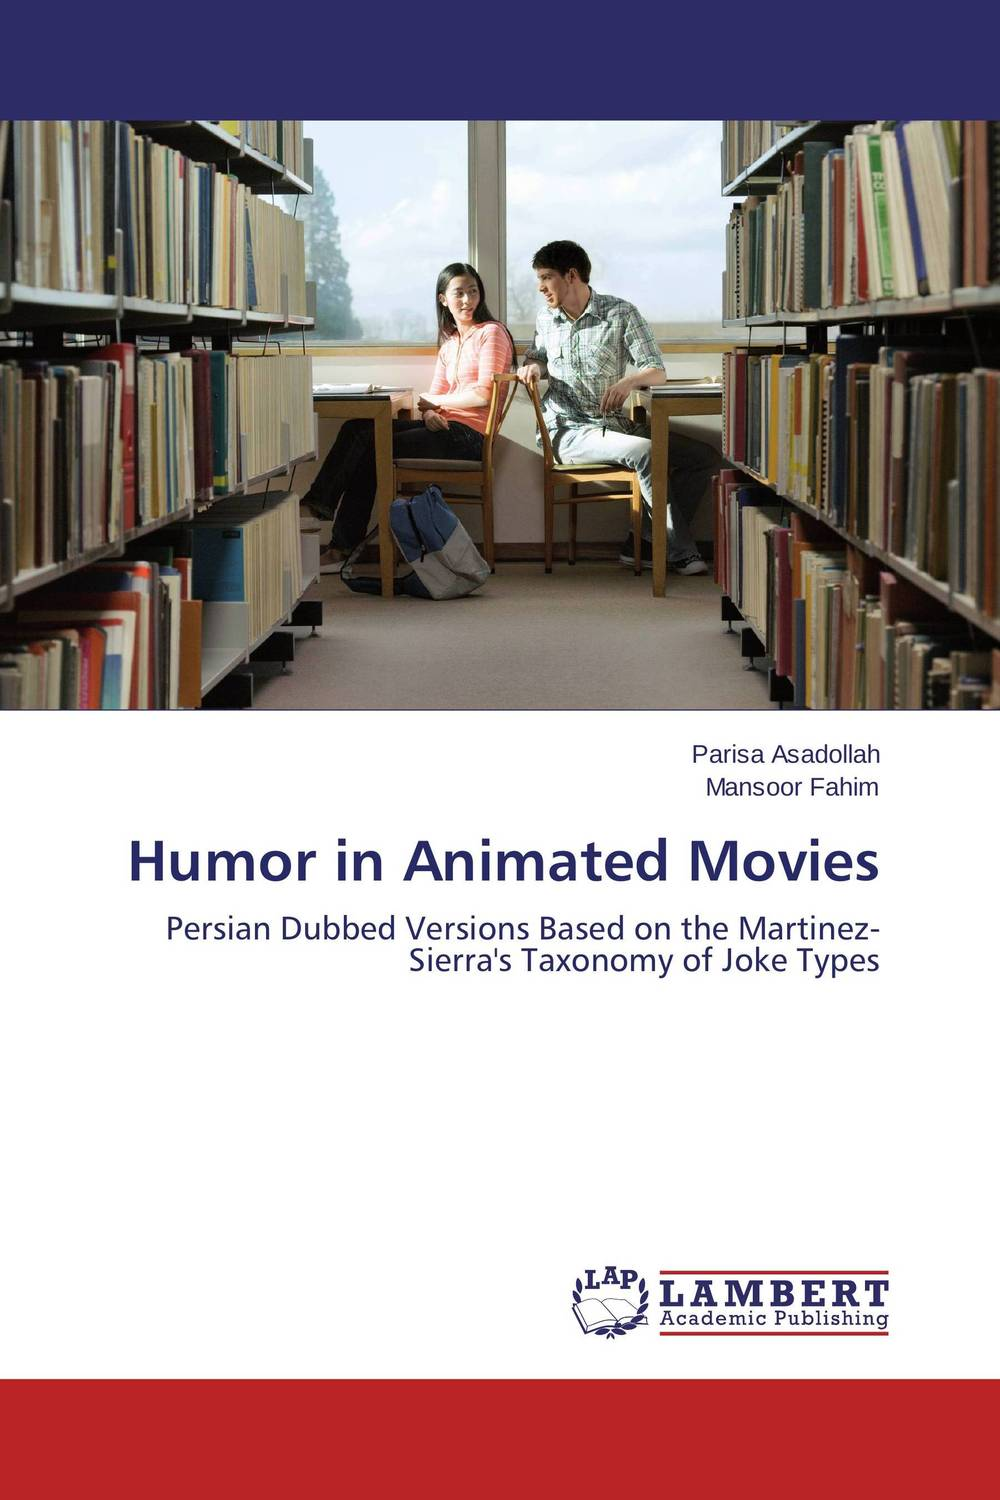 Humor in Animated Movies translation competence development